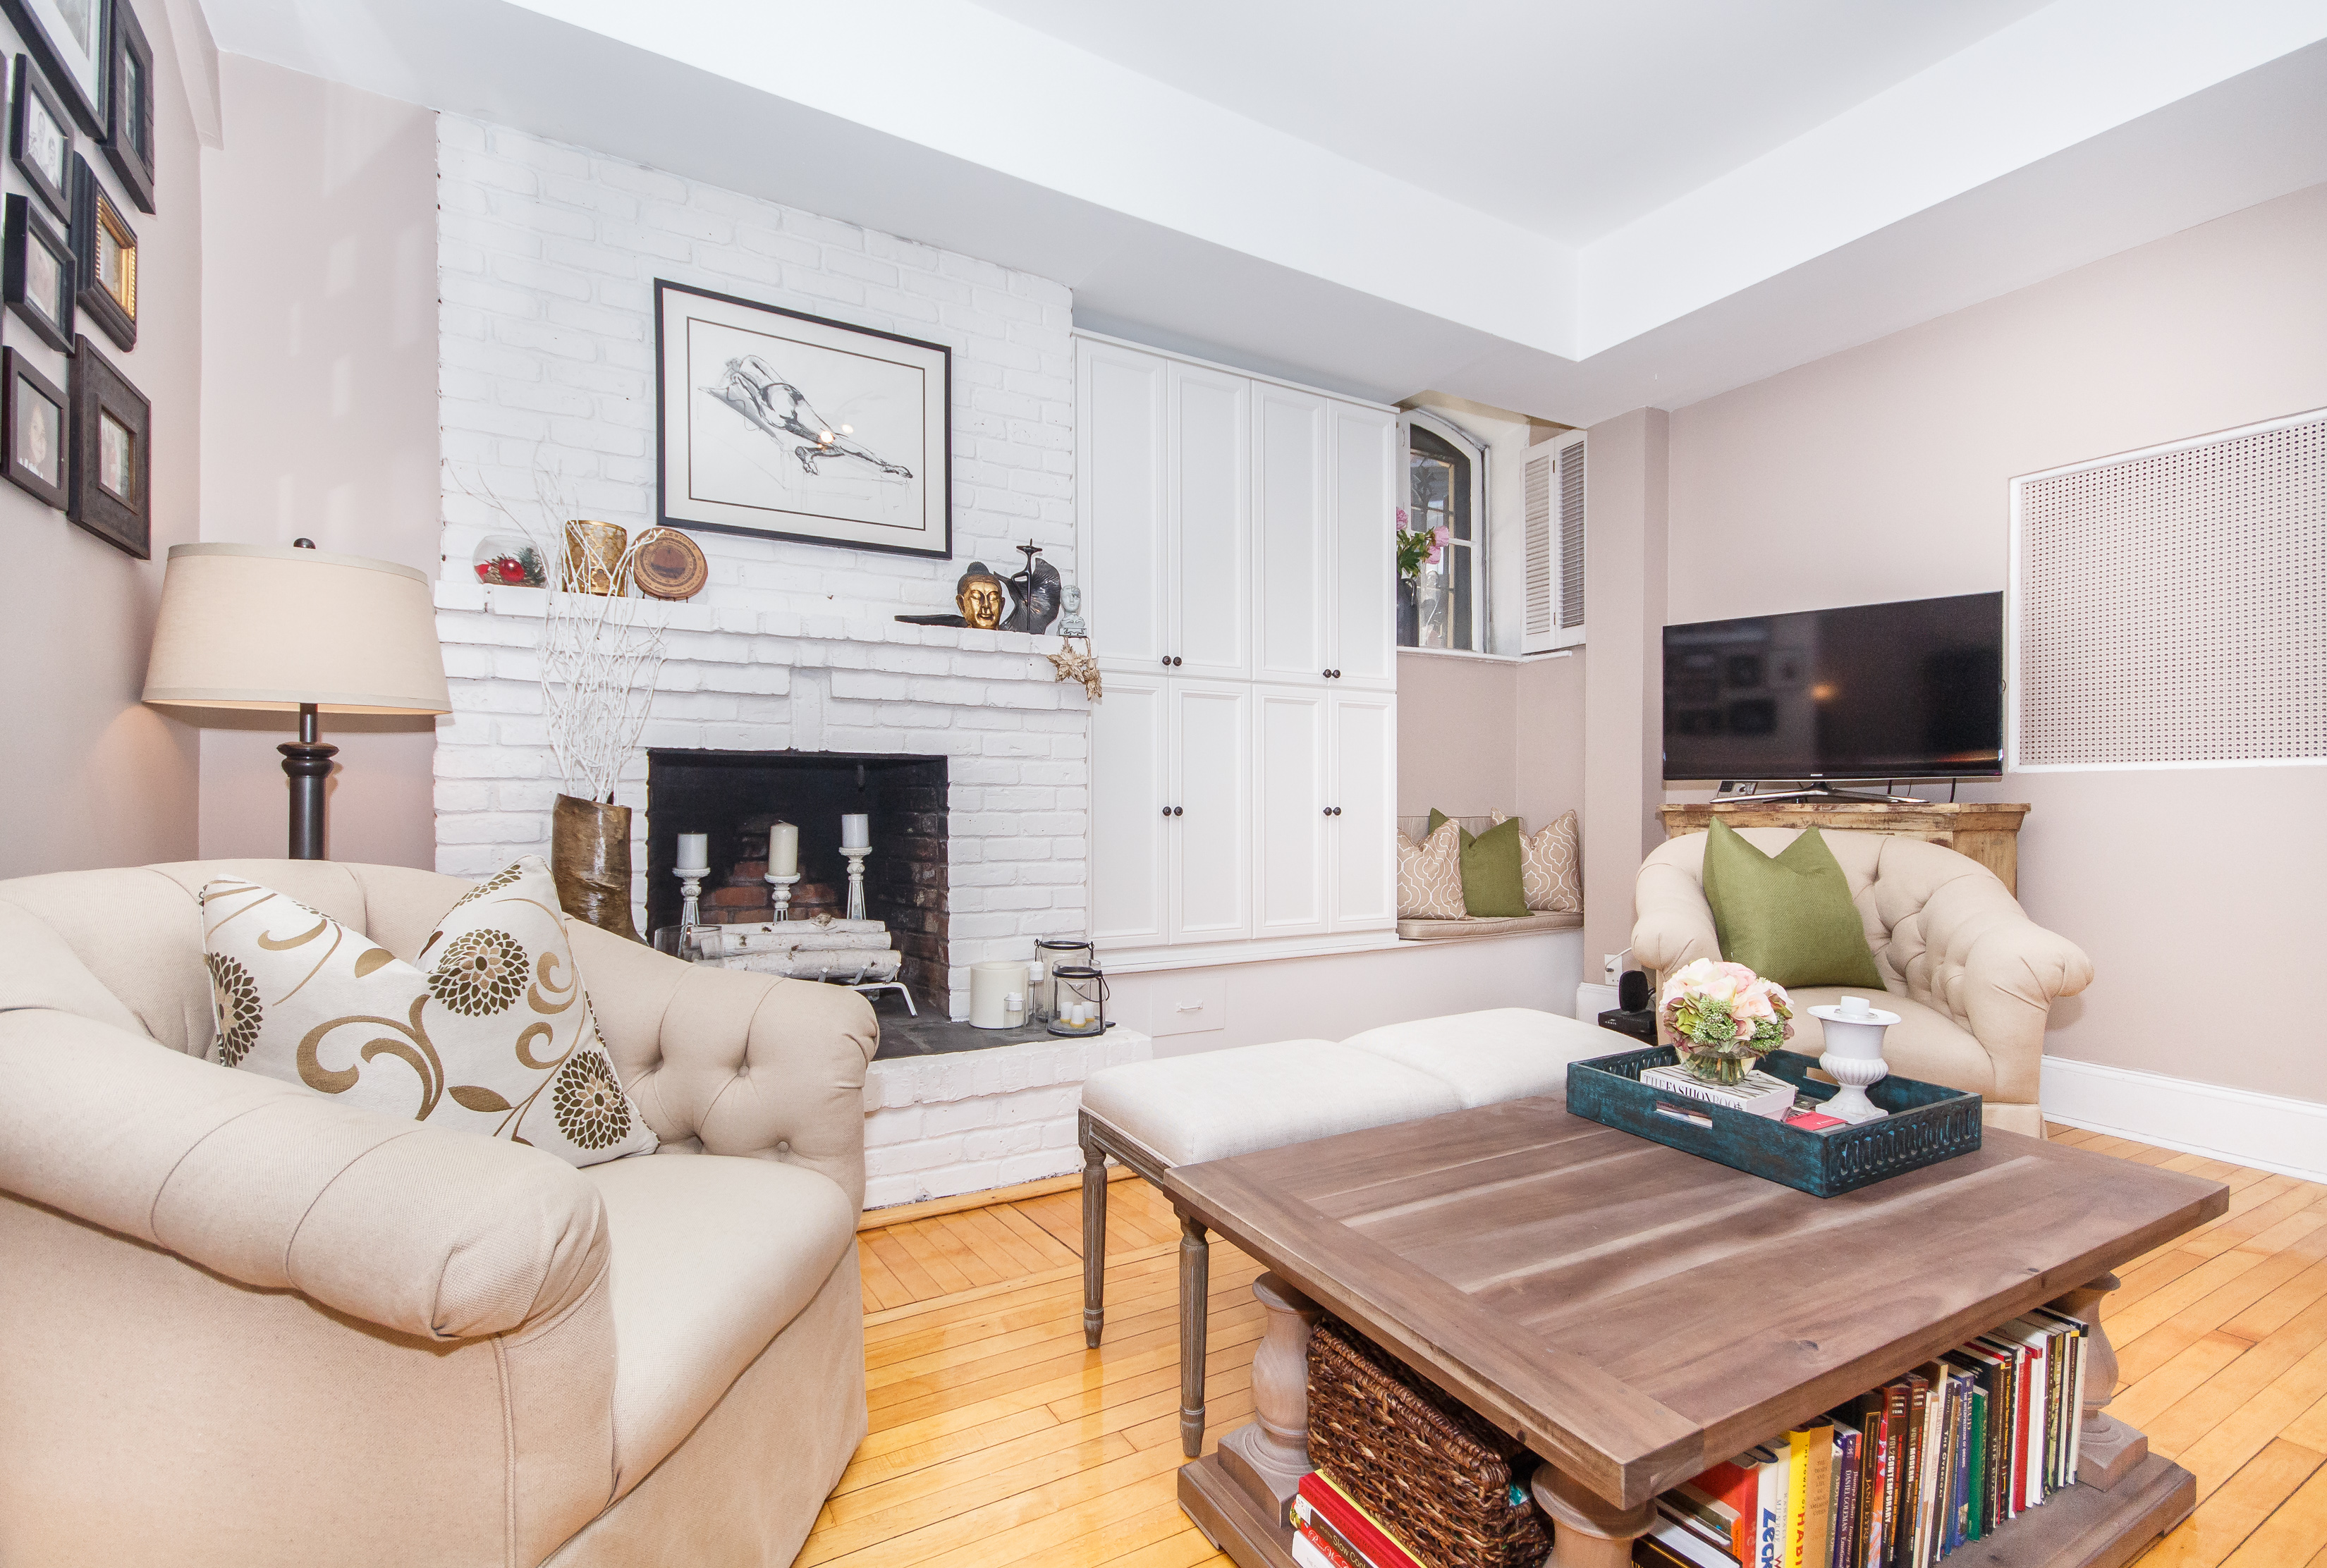 sales property at 278 Clarendon - Unit #1, Oversized One Bedroom